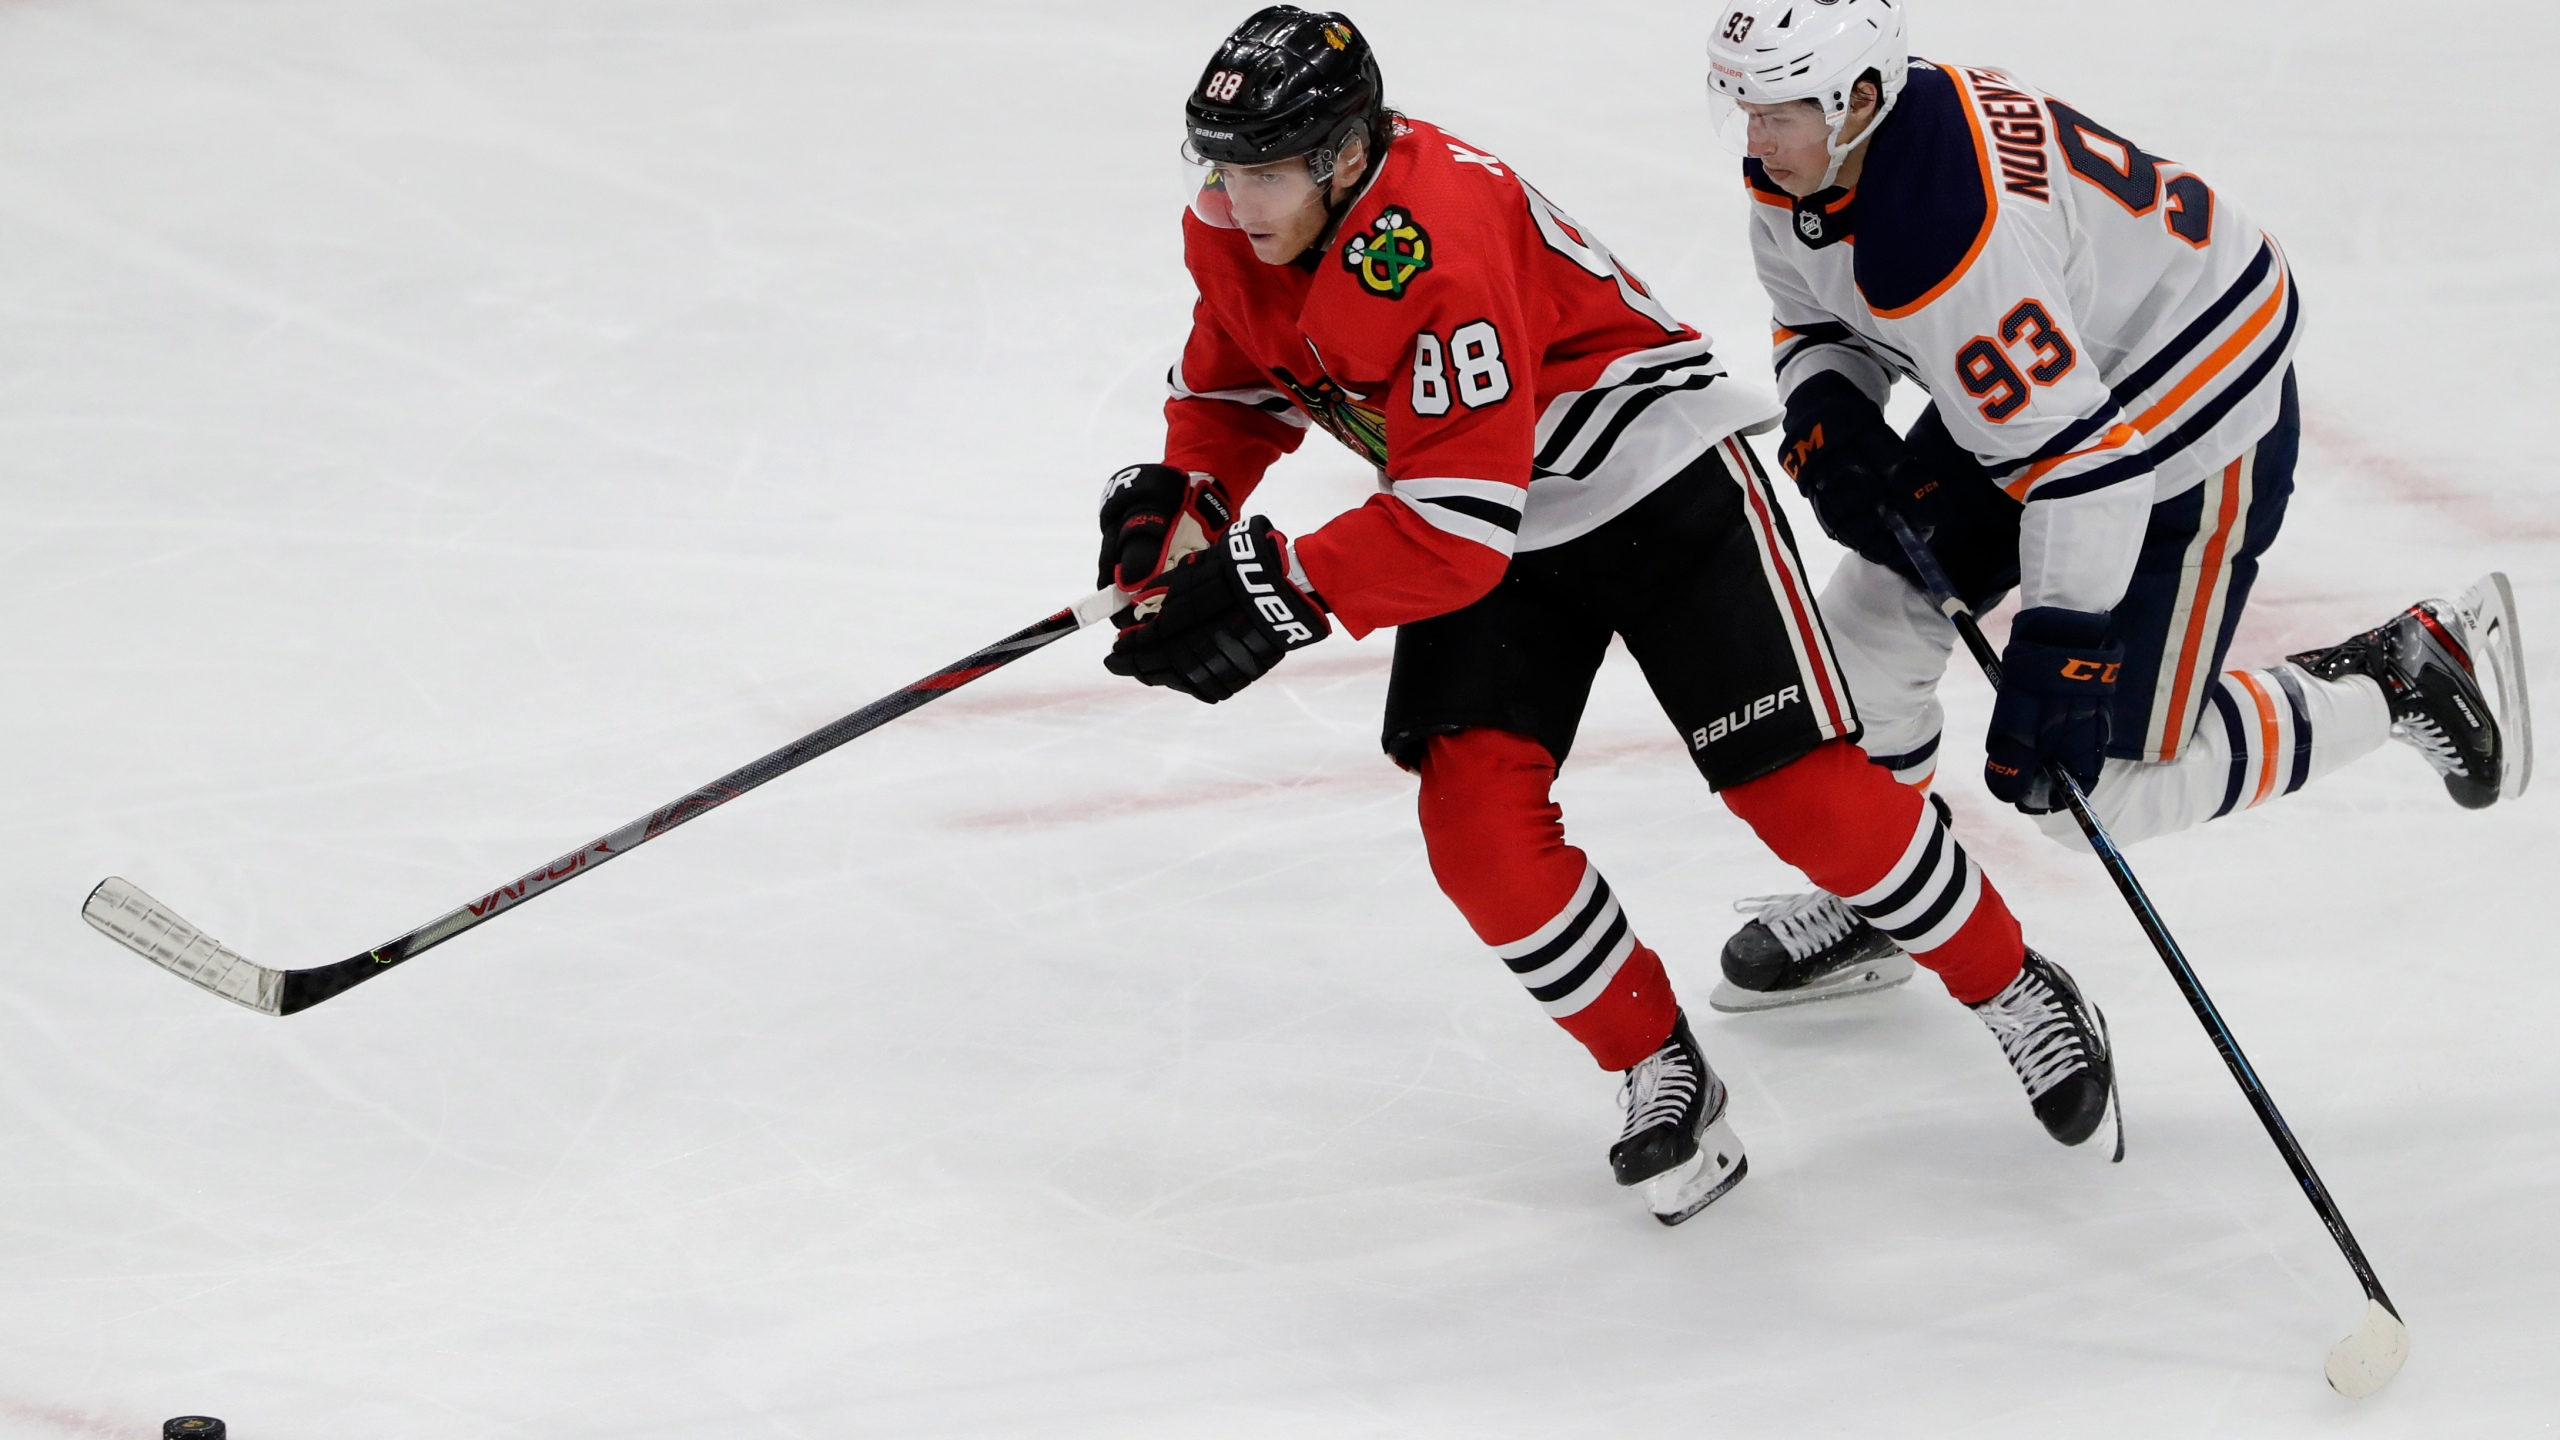 Patrick Kane, Ryan Nugent-Hopkins